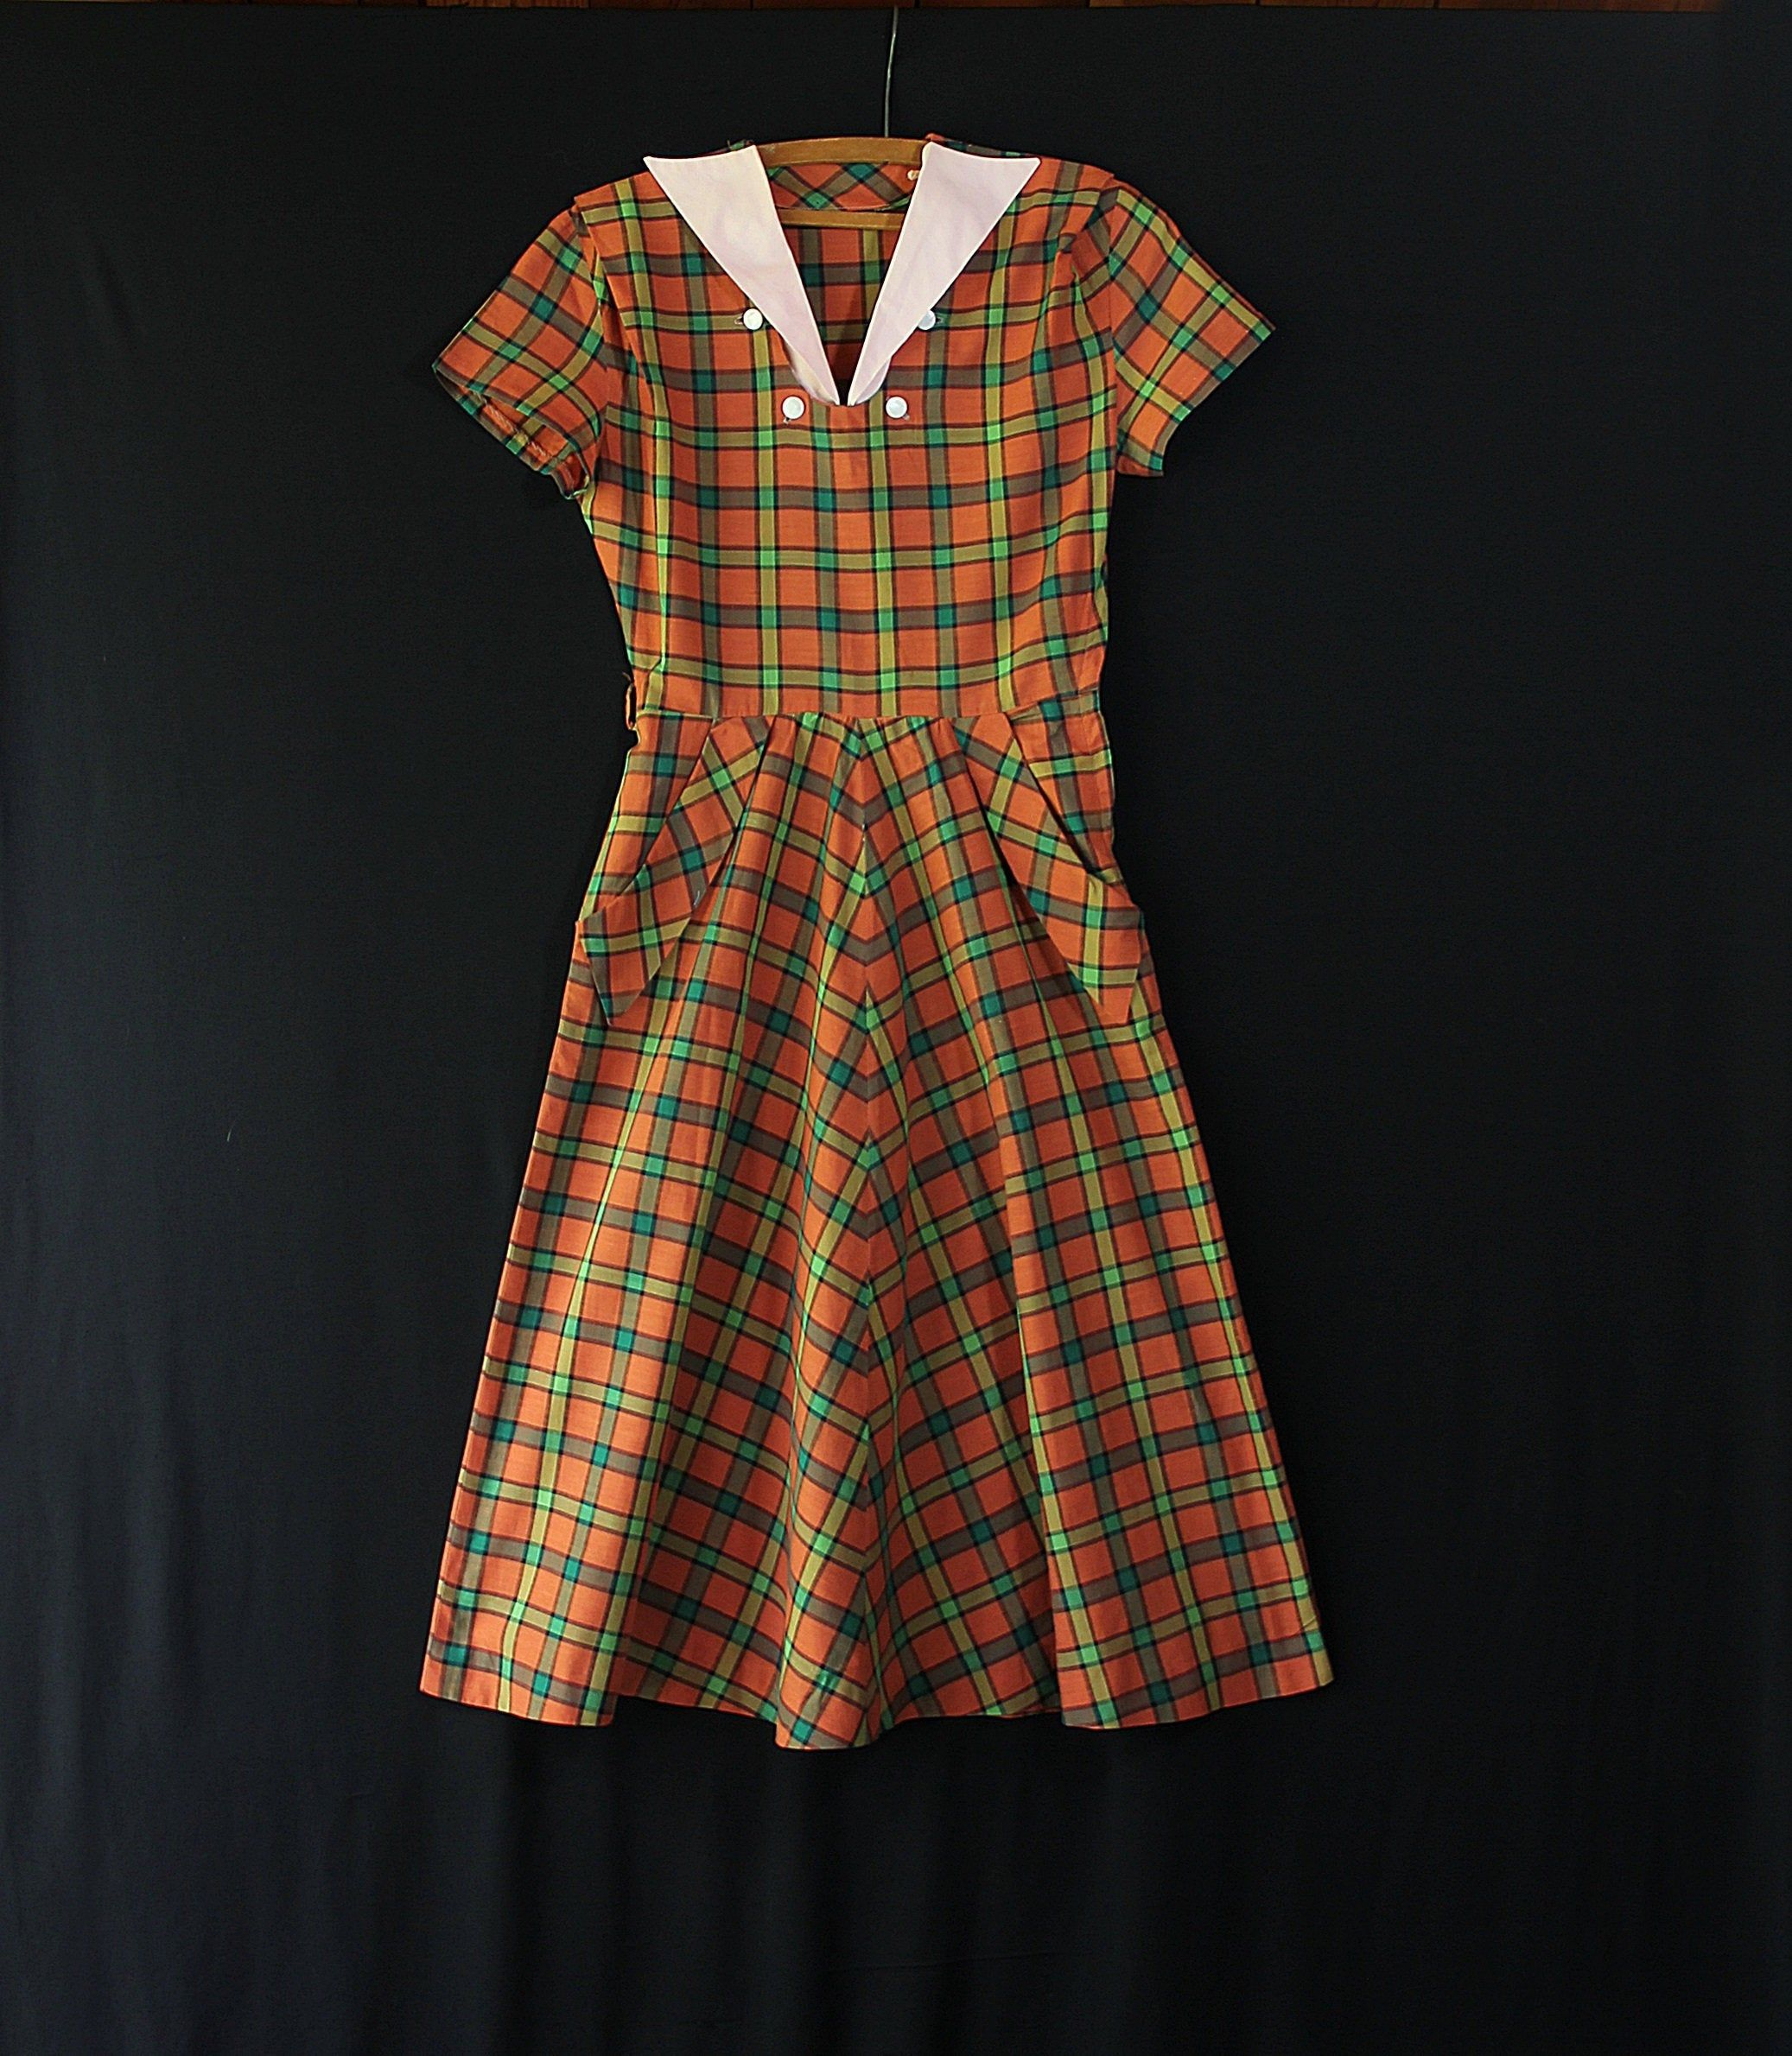 Lovely 1940s gingham dress black and white ginghan checker 40s dress with button belt button back and shoulder pads vintage shirtdress